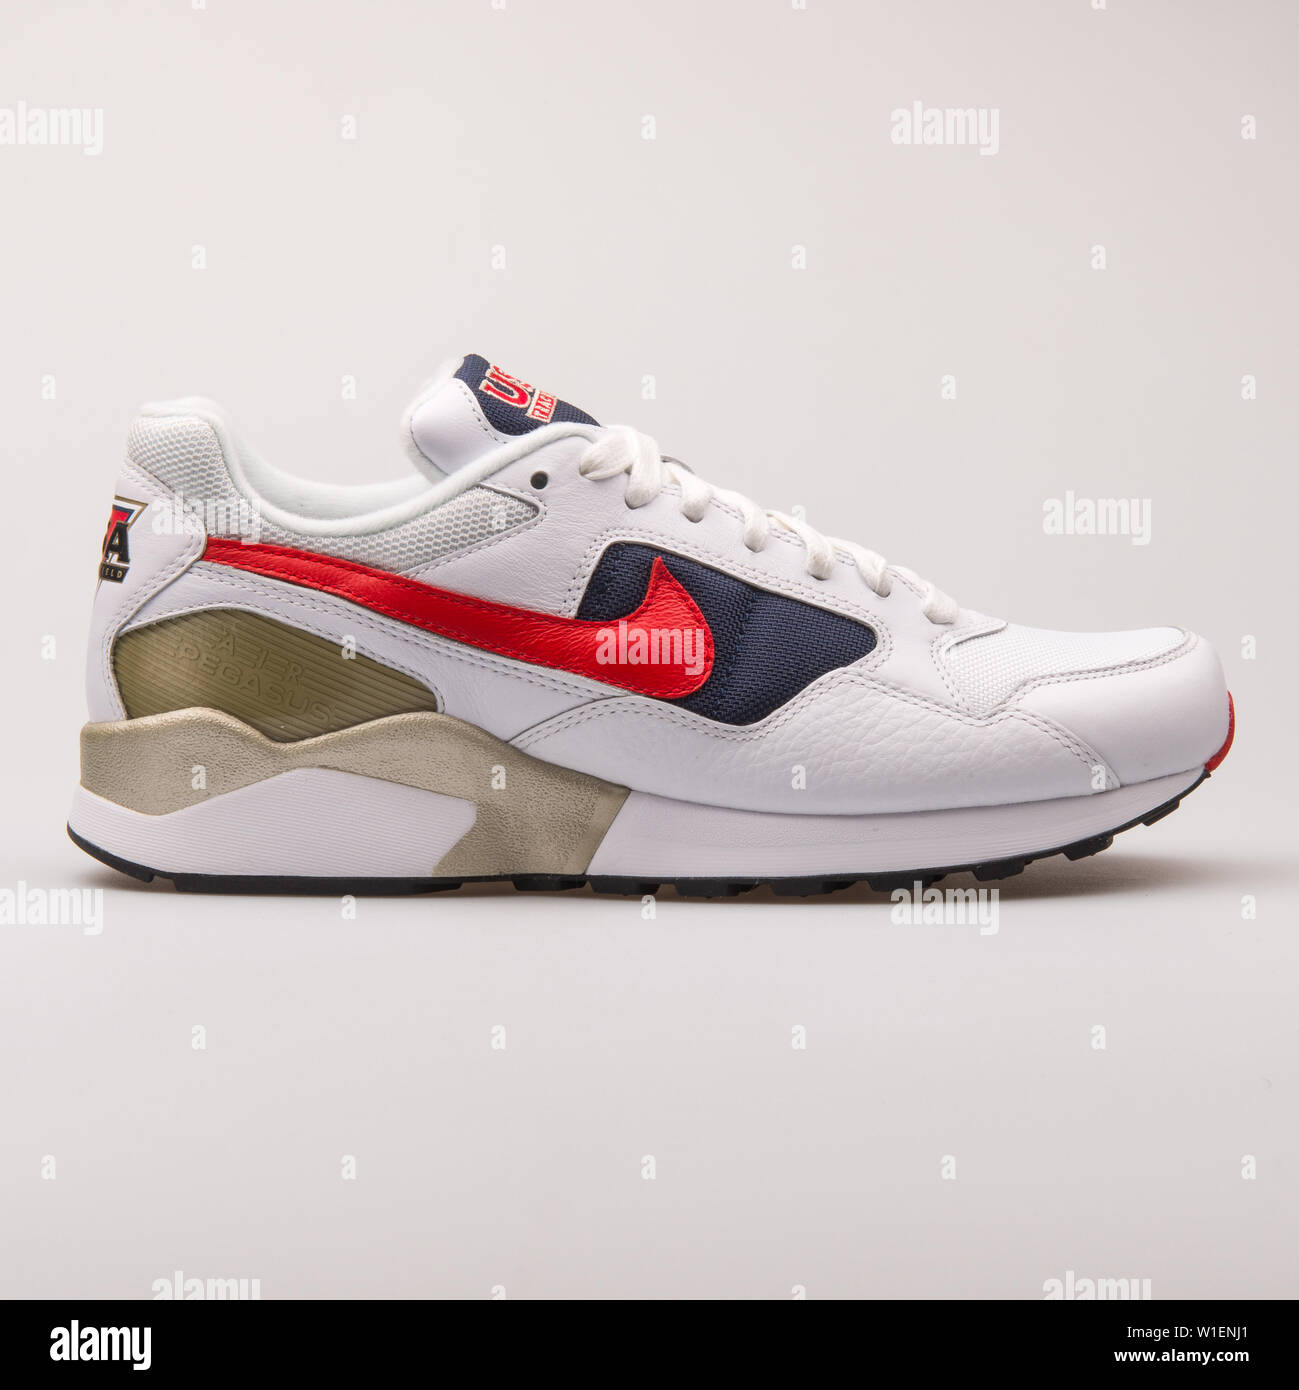 sports shoes 8120f 9726b VIENNA, AUSTRIA - AUGUST 30, 2017  Nike Air Pegasus 92 Premium white, gold,  red and blue sneaker on white background.